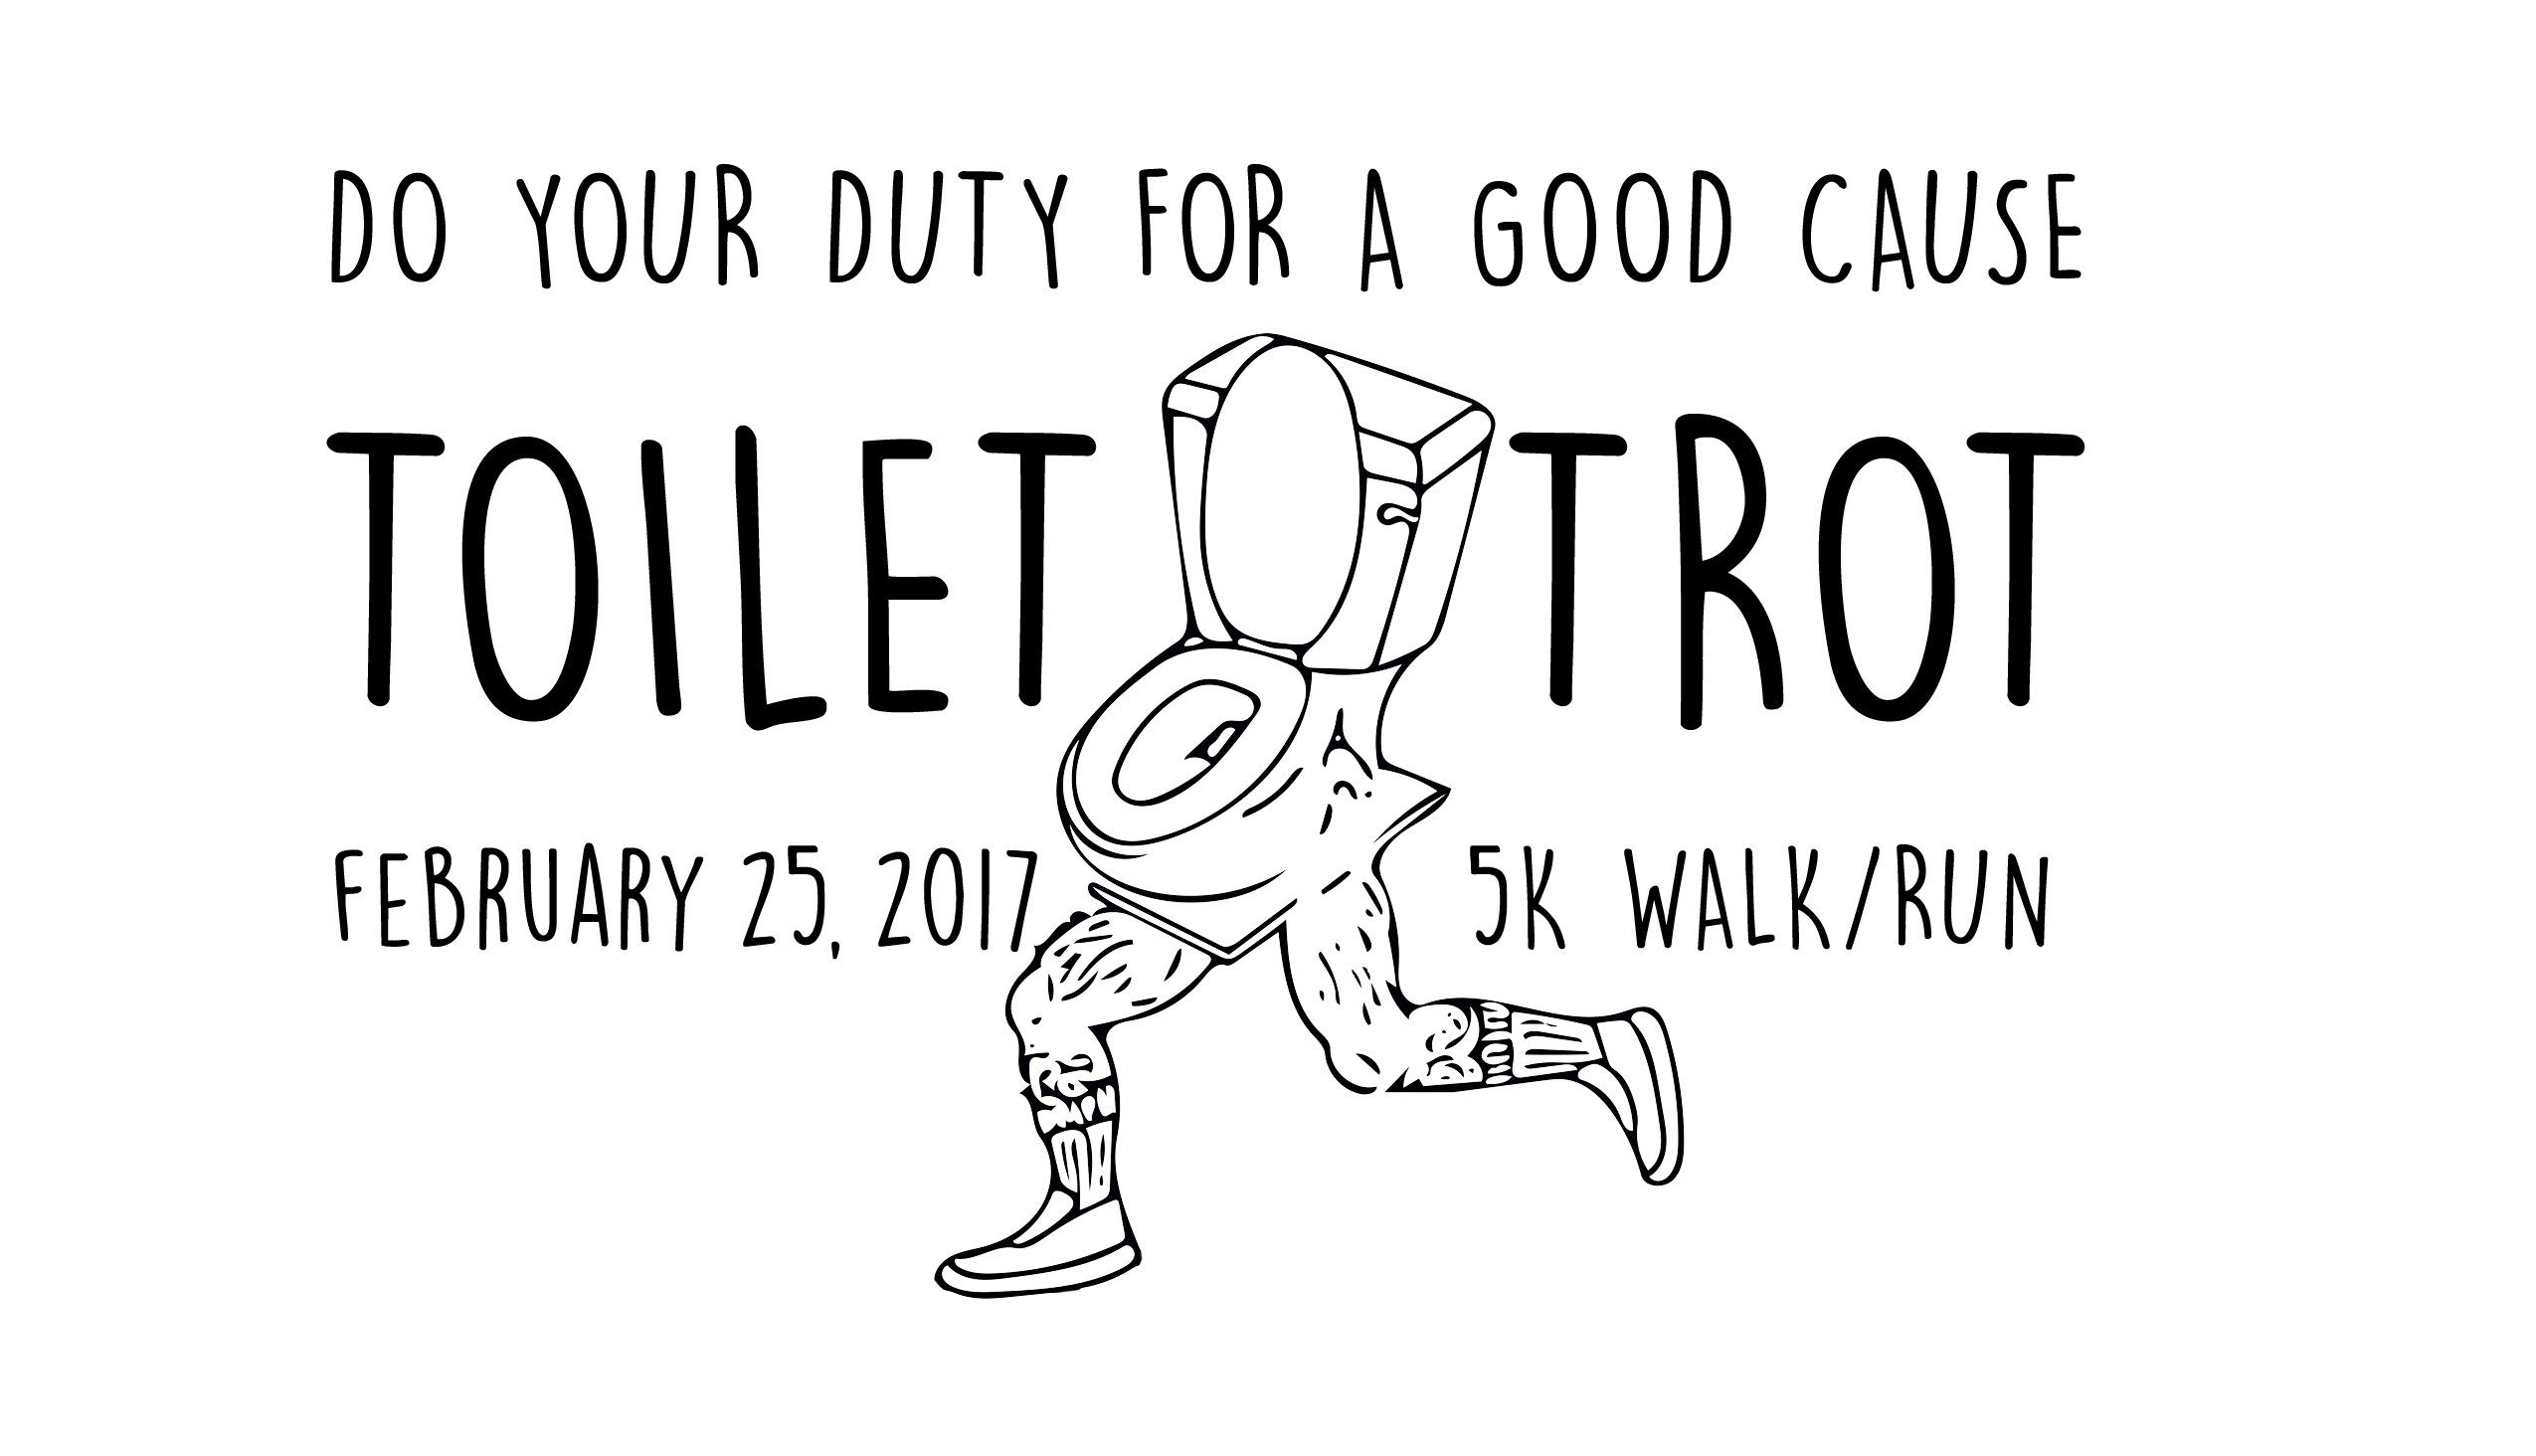 Toilet Trot | Do Your Duty for a Good Cause